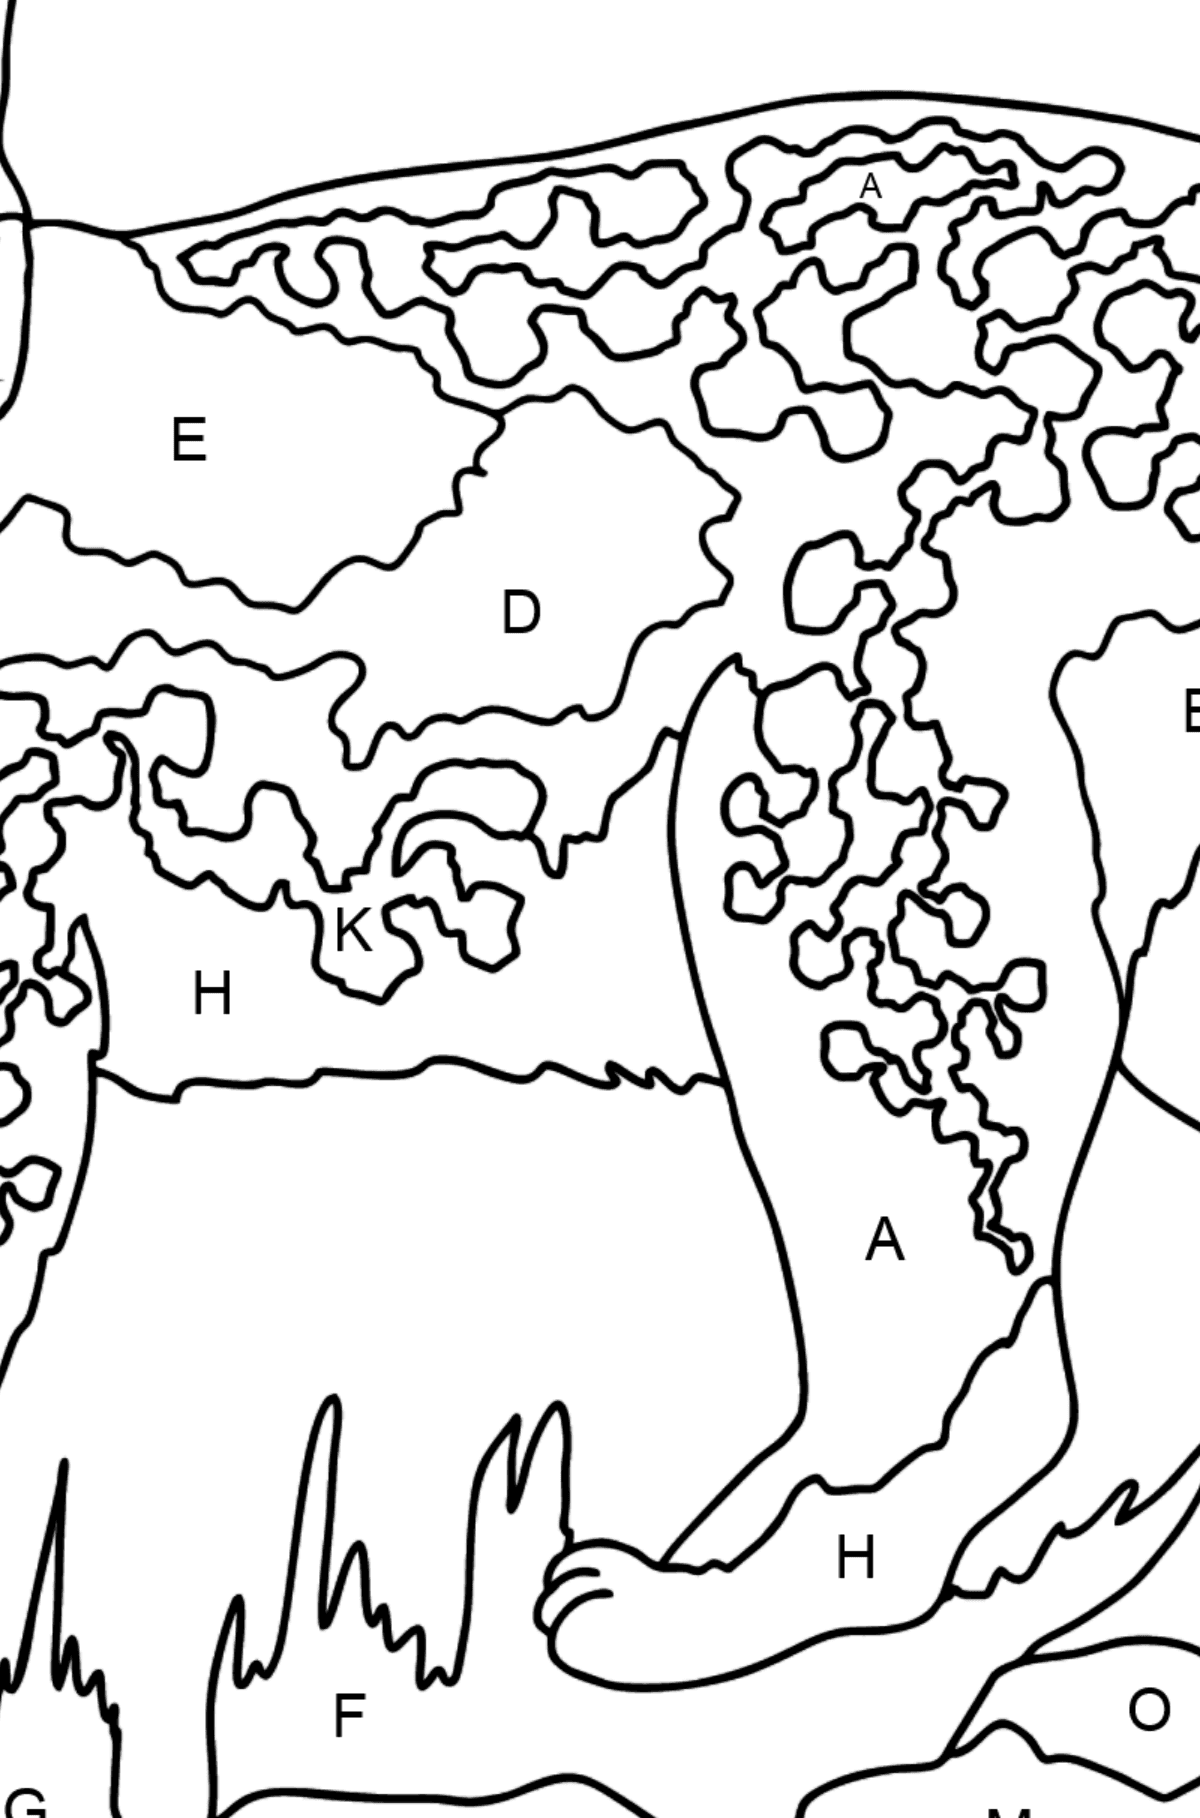 Coloring Page - A Lynx in the Forest - Coloring by Letters for Kids